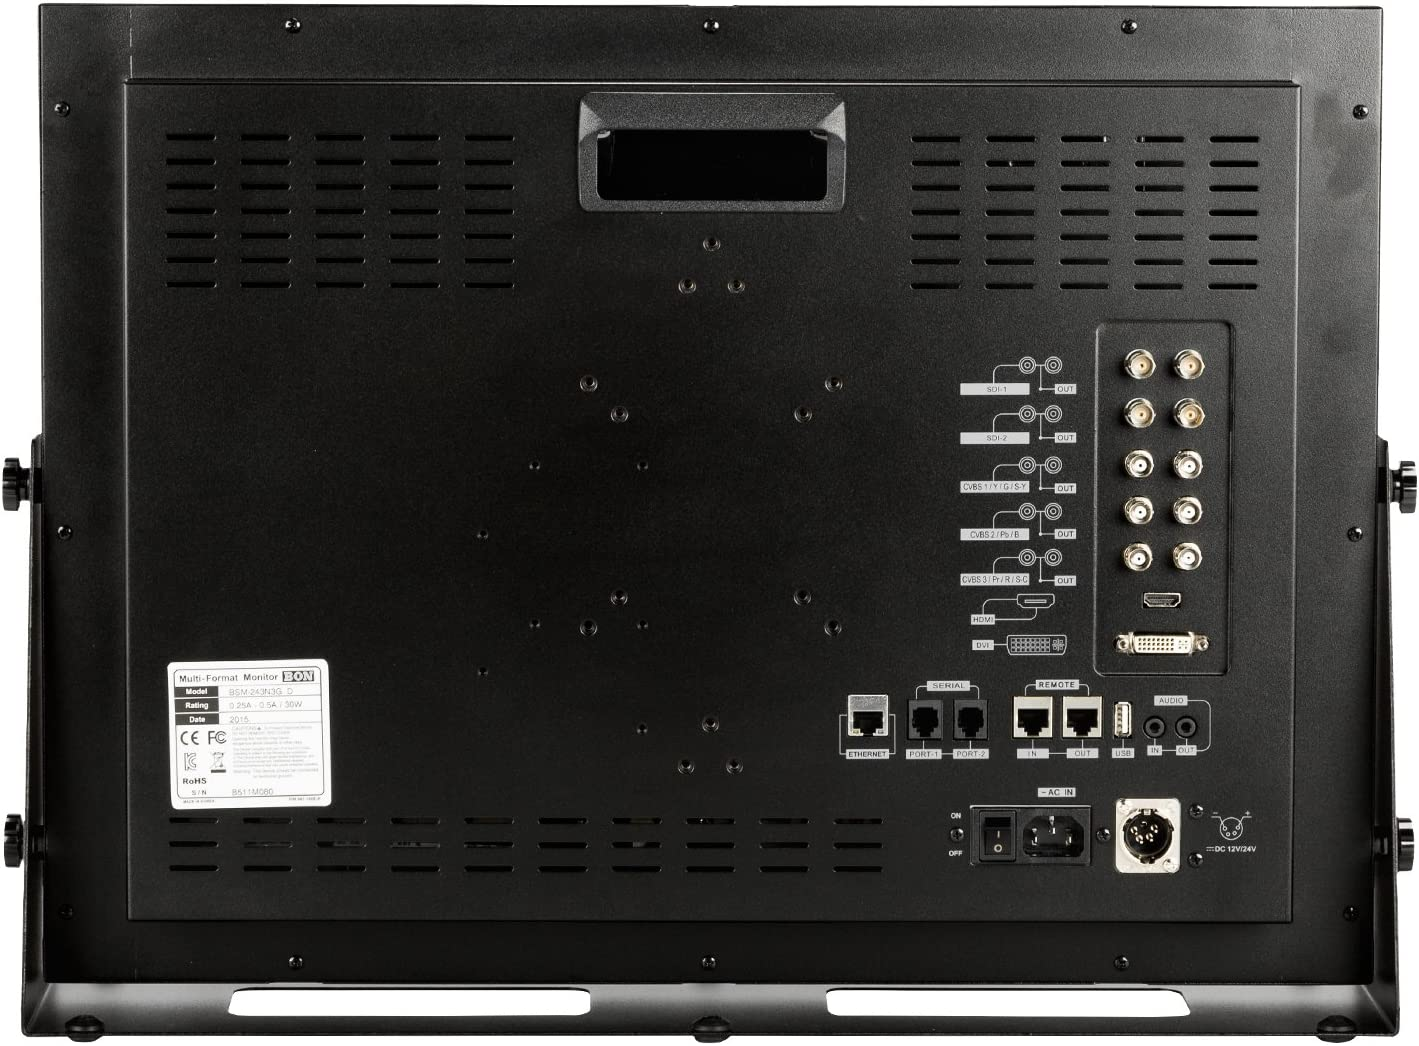 BSM-243N3G Ikan 24 3G//HD//SD-SDI /& HDMI LCD Studio Broadcast /& Production Rack-mountable Monitor Bon